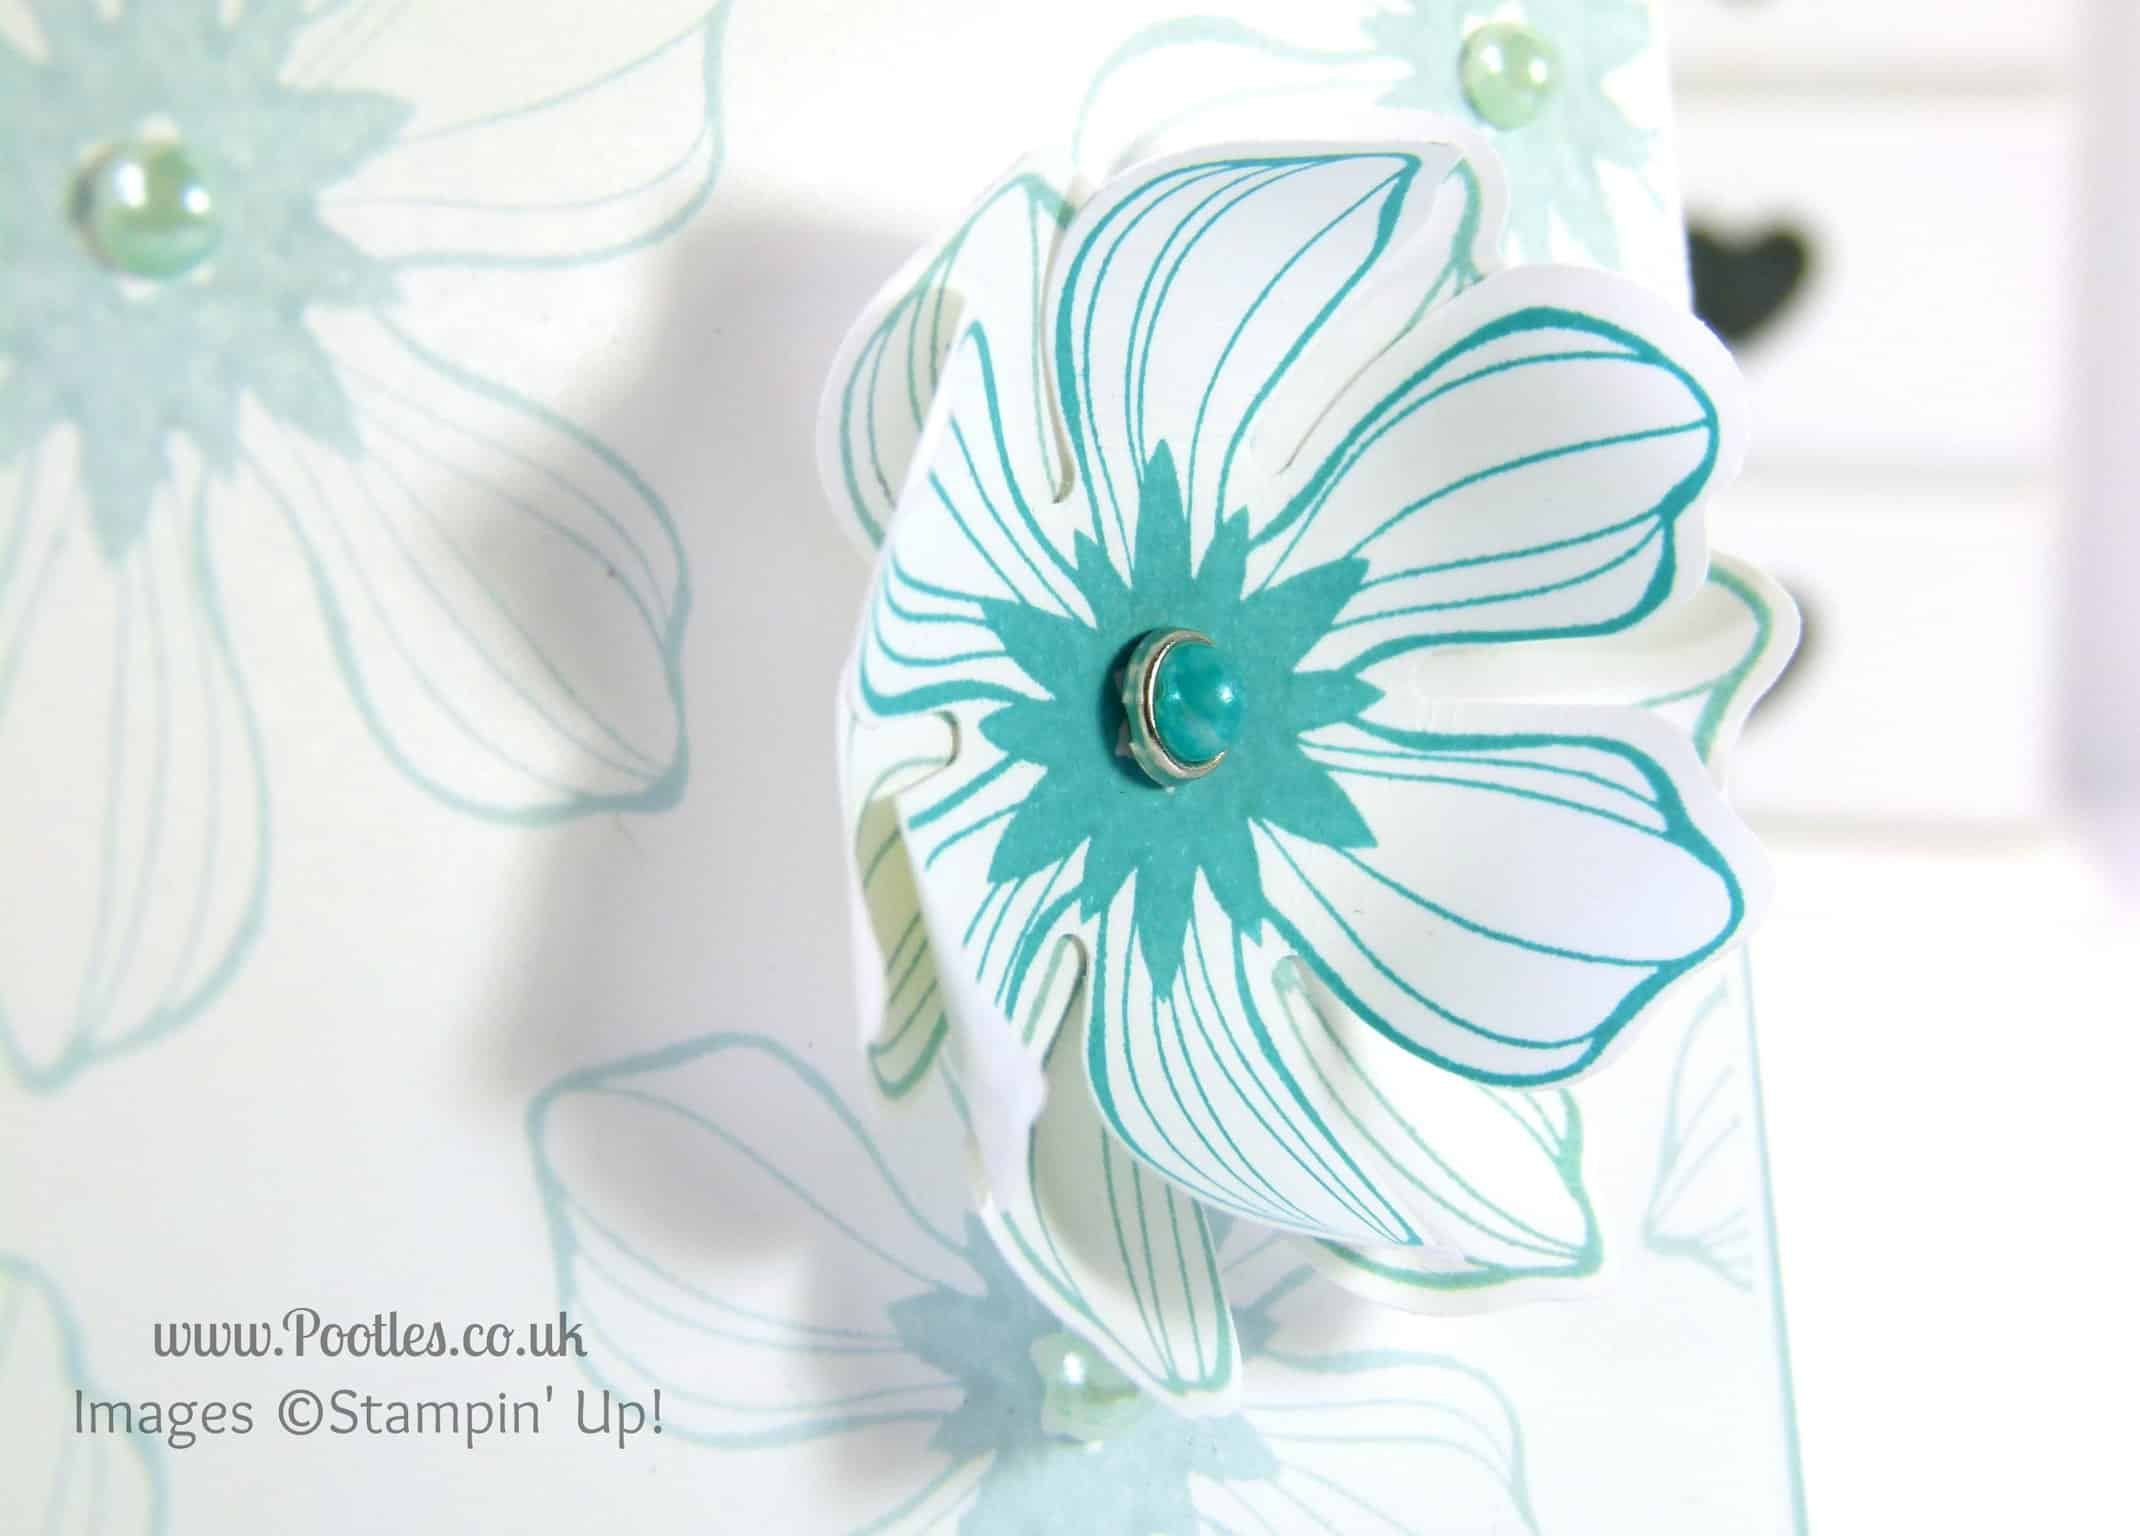 Stampin' Up! UK Demonstrator Pootles - Beautiful Bunch Card using Stampin' Up! Products Blendabilities Detail